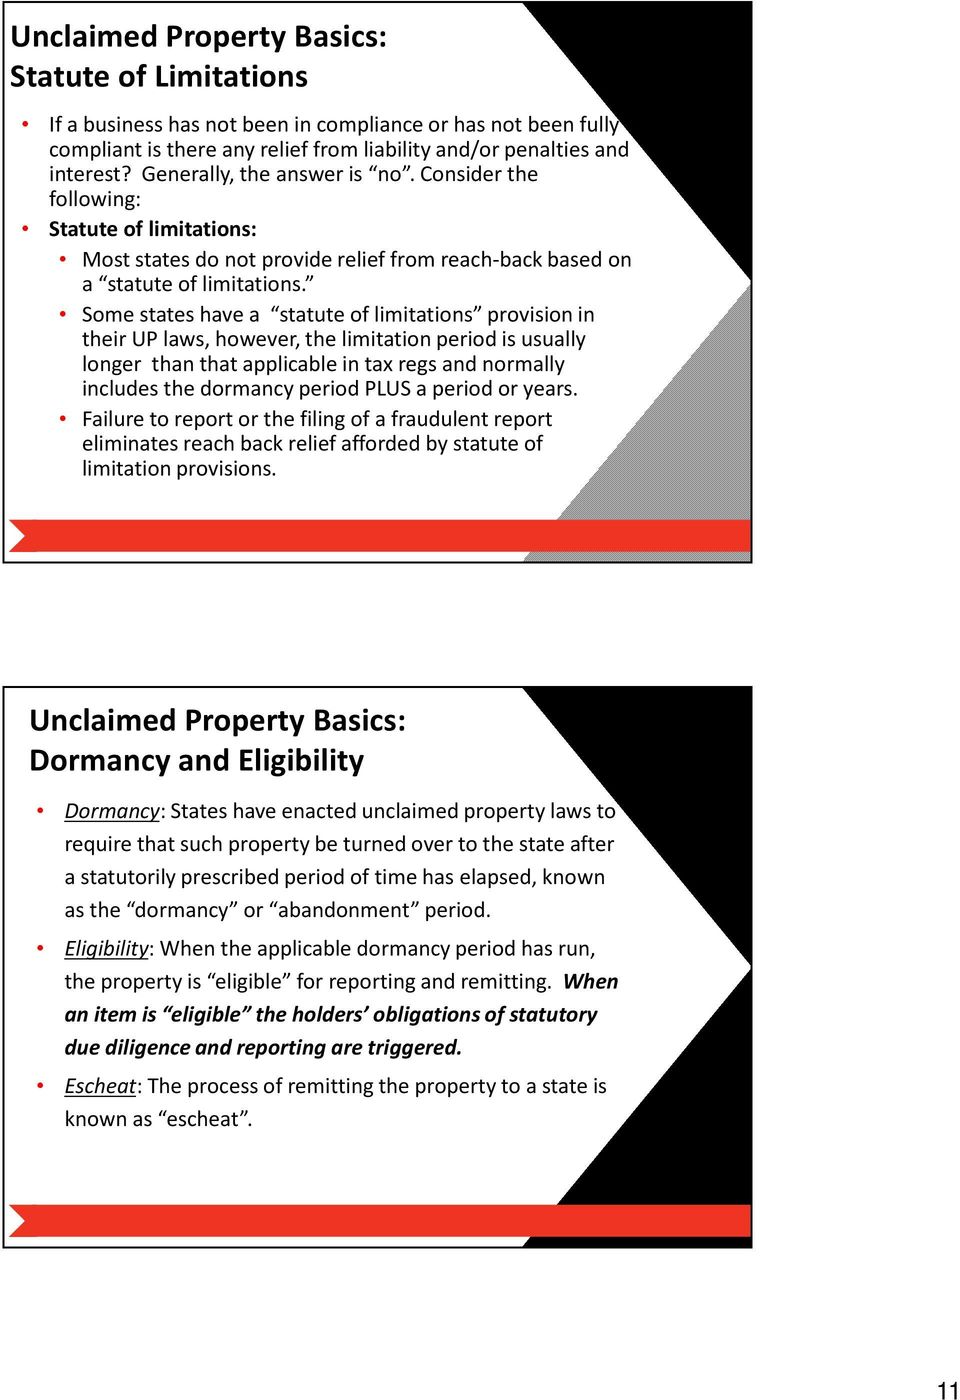 Unclaimed Property Update: Compliance with Escheatment